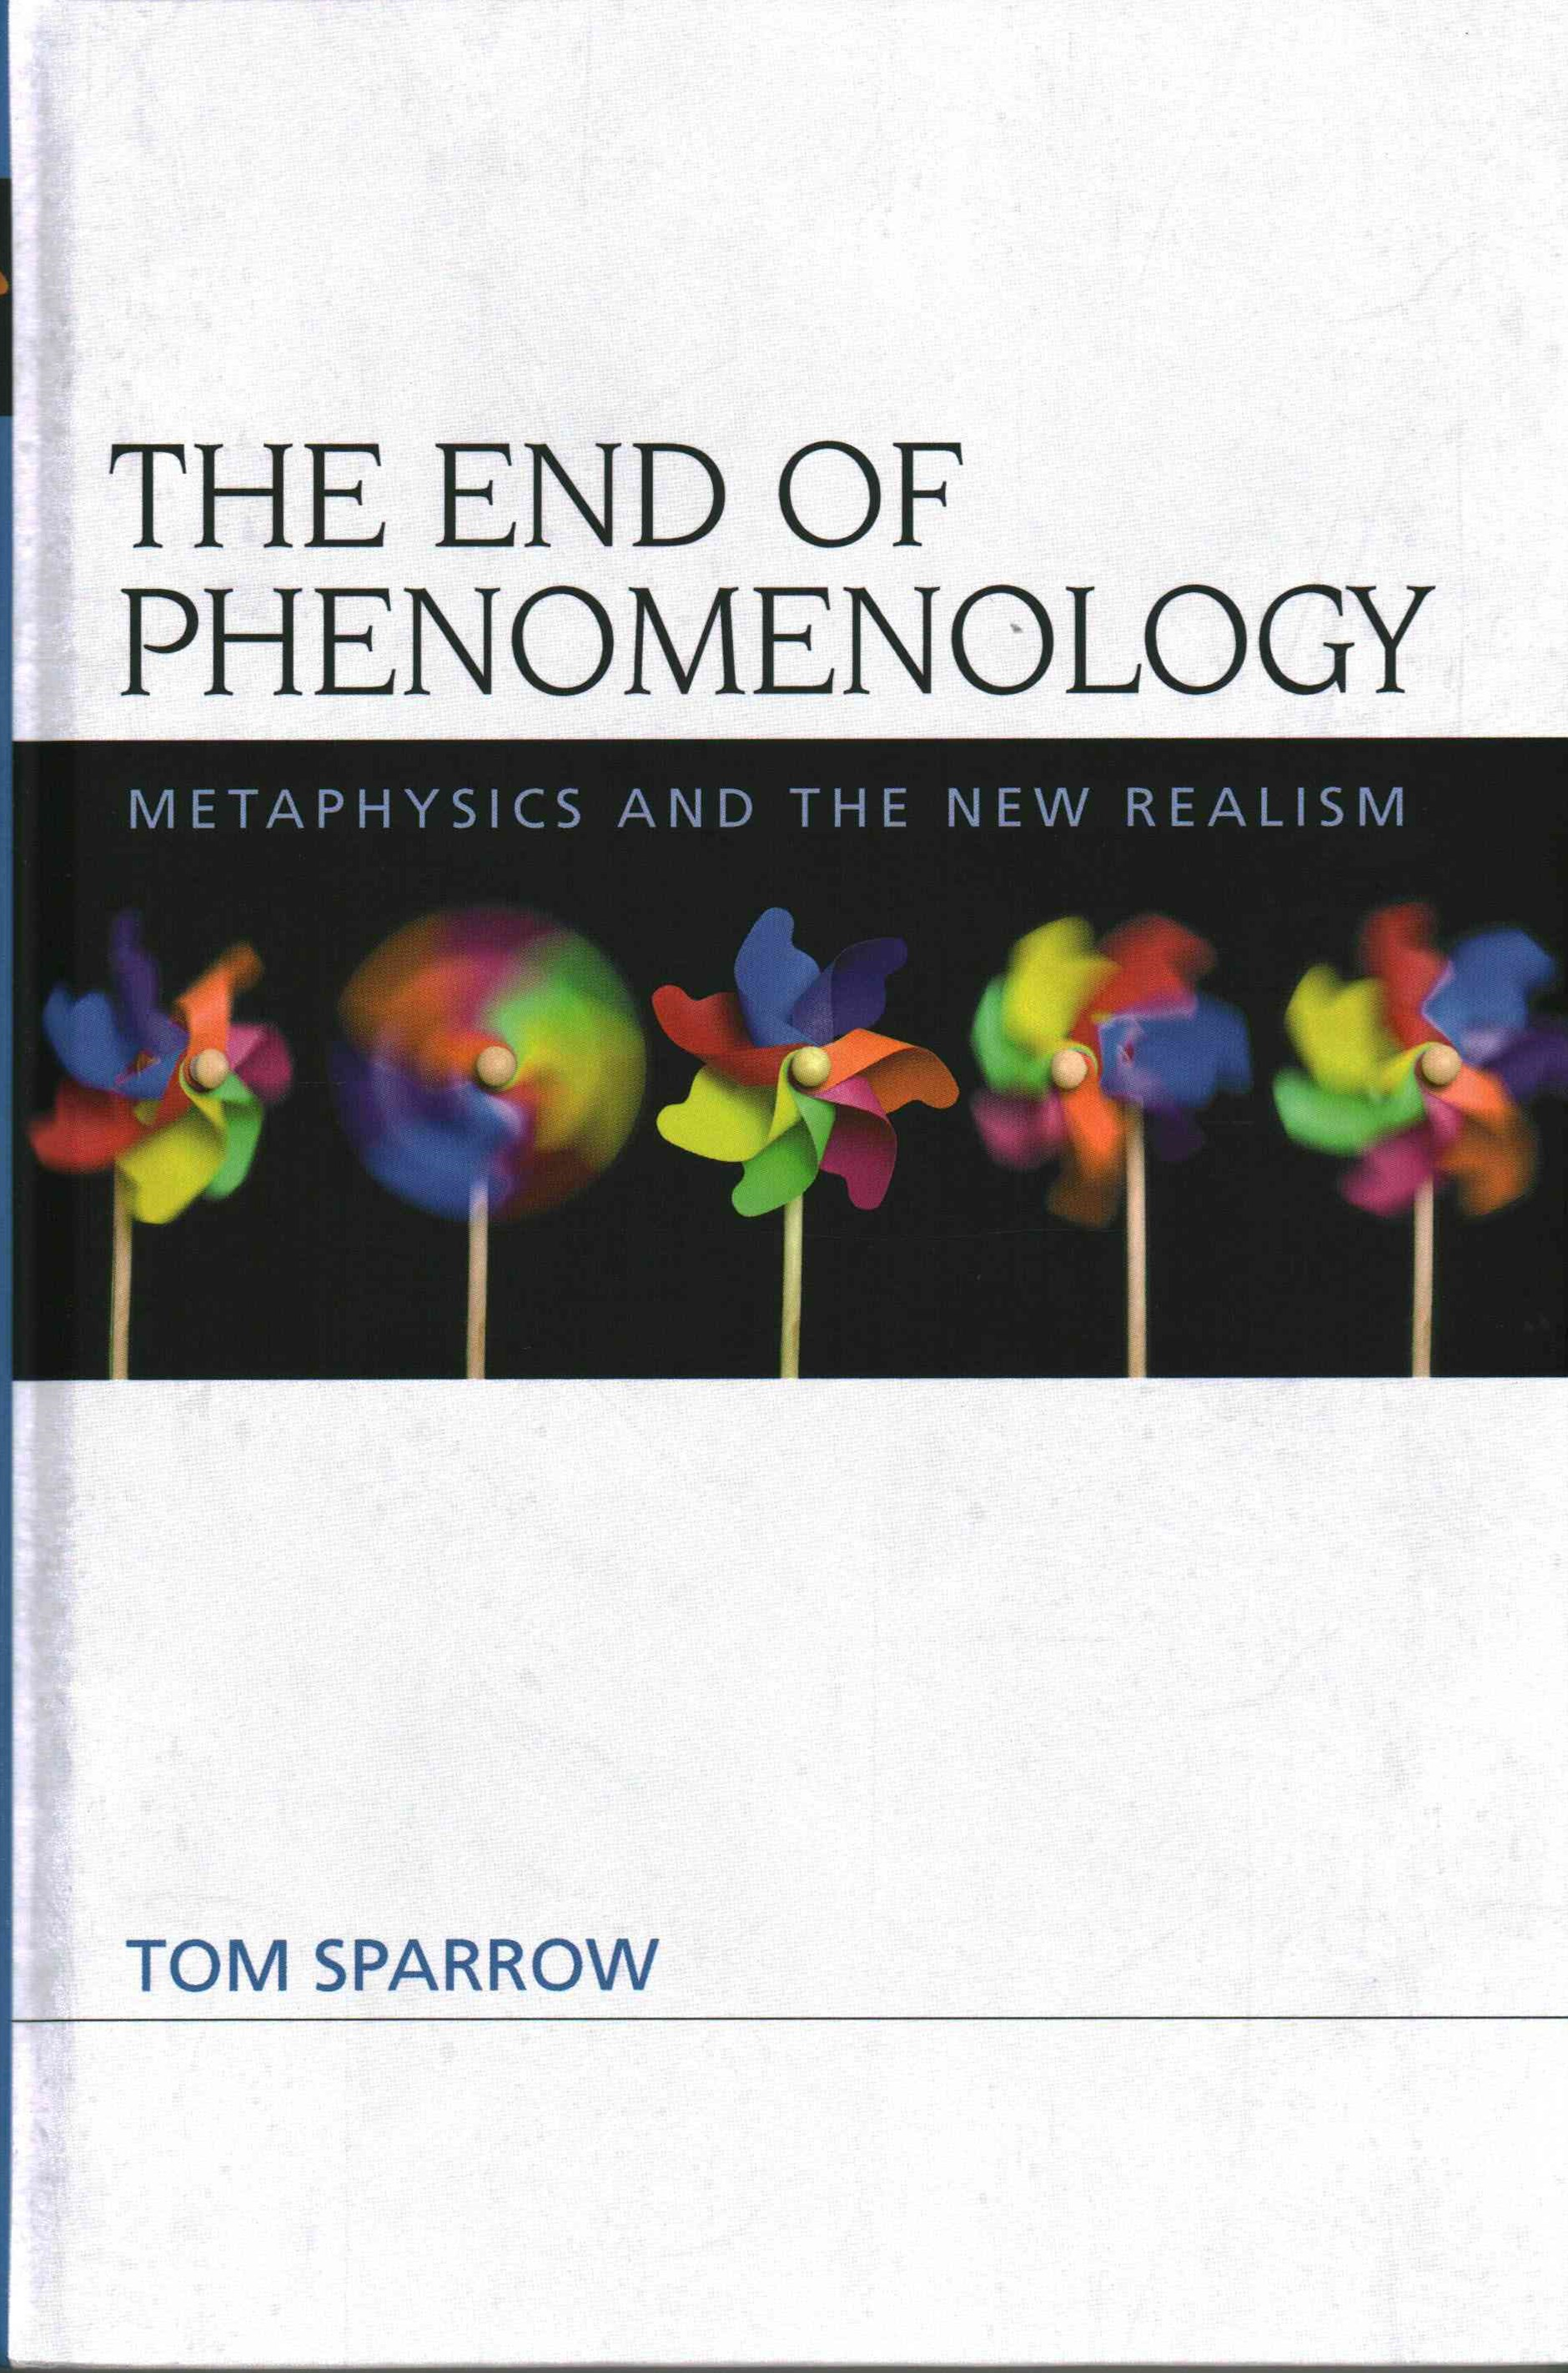 The End of Phenomenology